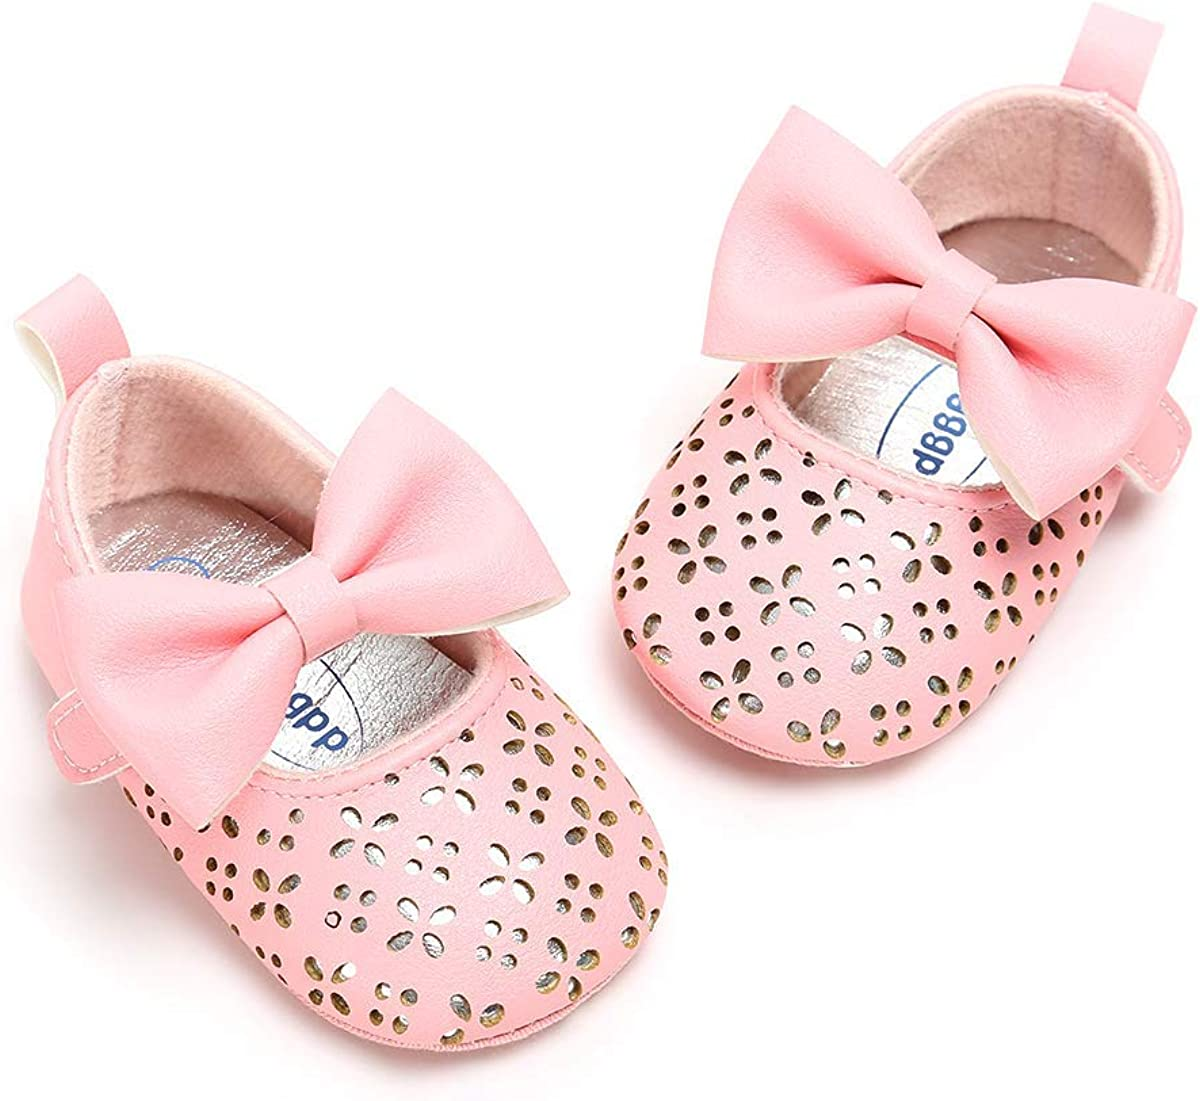 Dzień dobry Toddler Hollow-Out Flower /& Bowknot Design Cute Princess Shoes Soft Anti-Slip Baby Sneakers